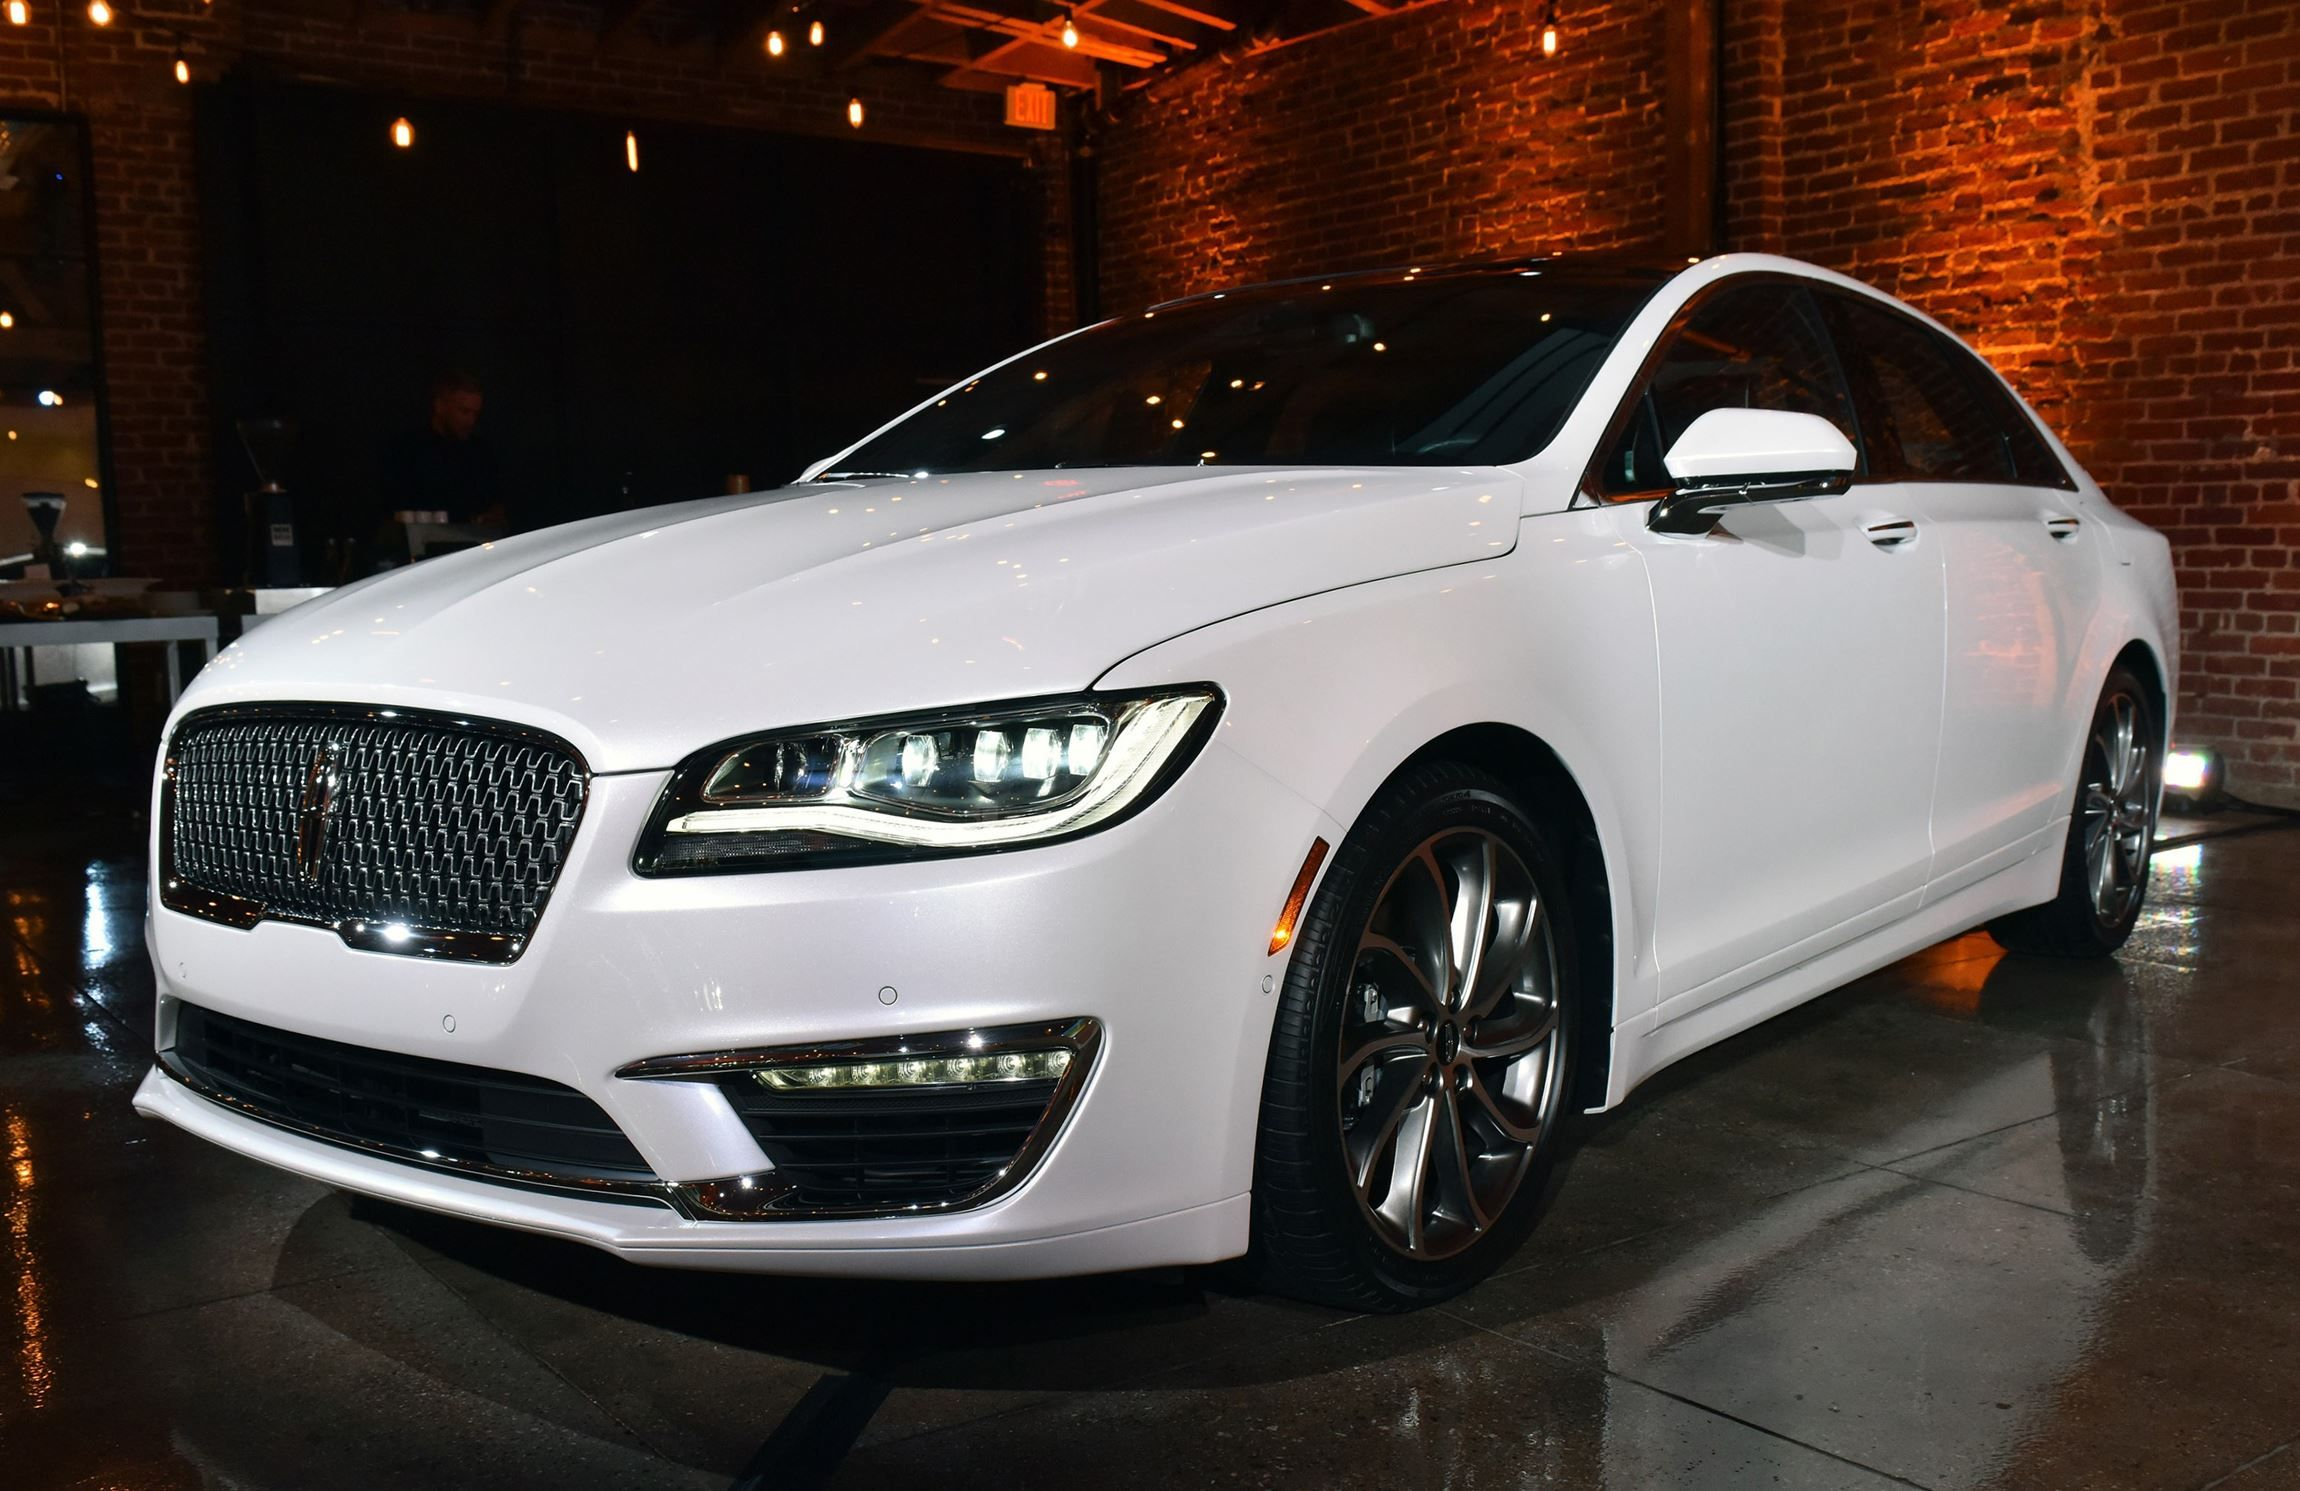 best 25 lincoln mkz ideas on pinterest lincoln mkz 2017 new lincoln cars and lincoln 2017. Black Bedroom Furniture Sets. Home Design Ideas